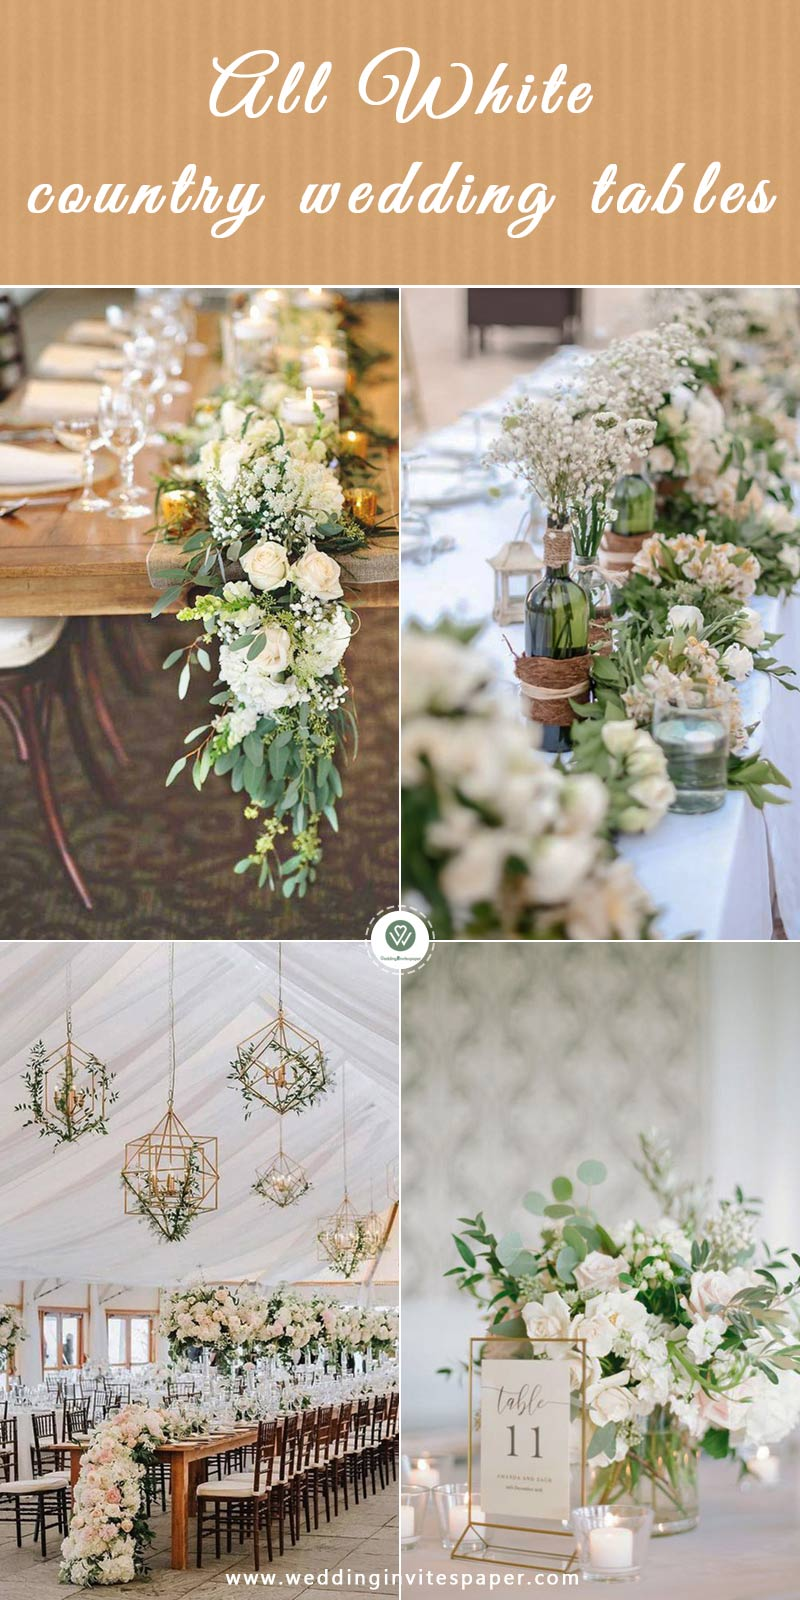 all-white-country-wedding-tables.jpg